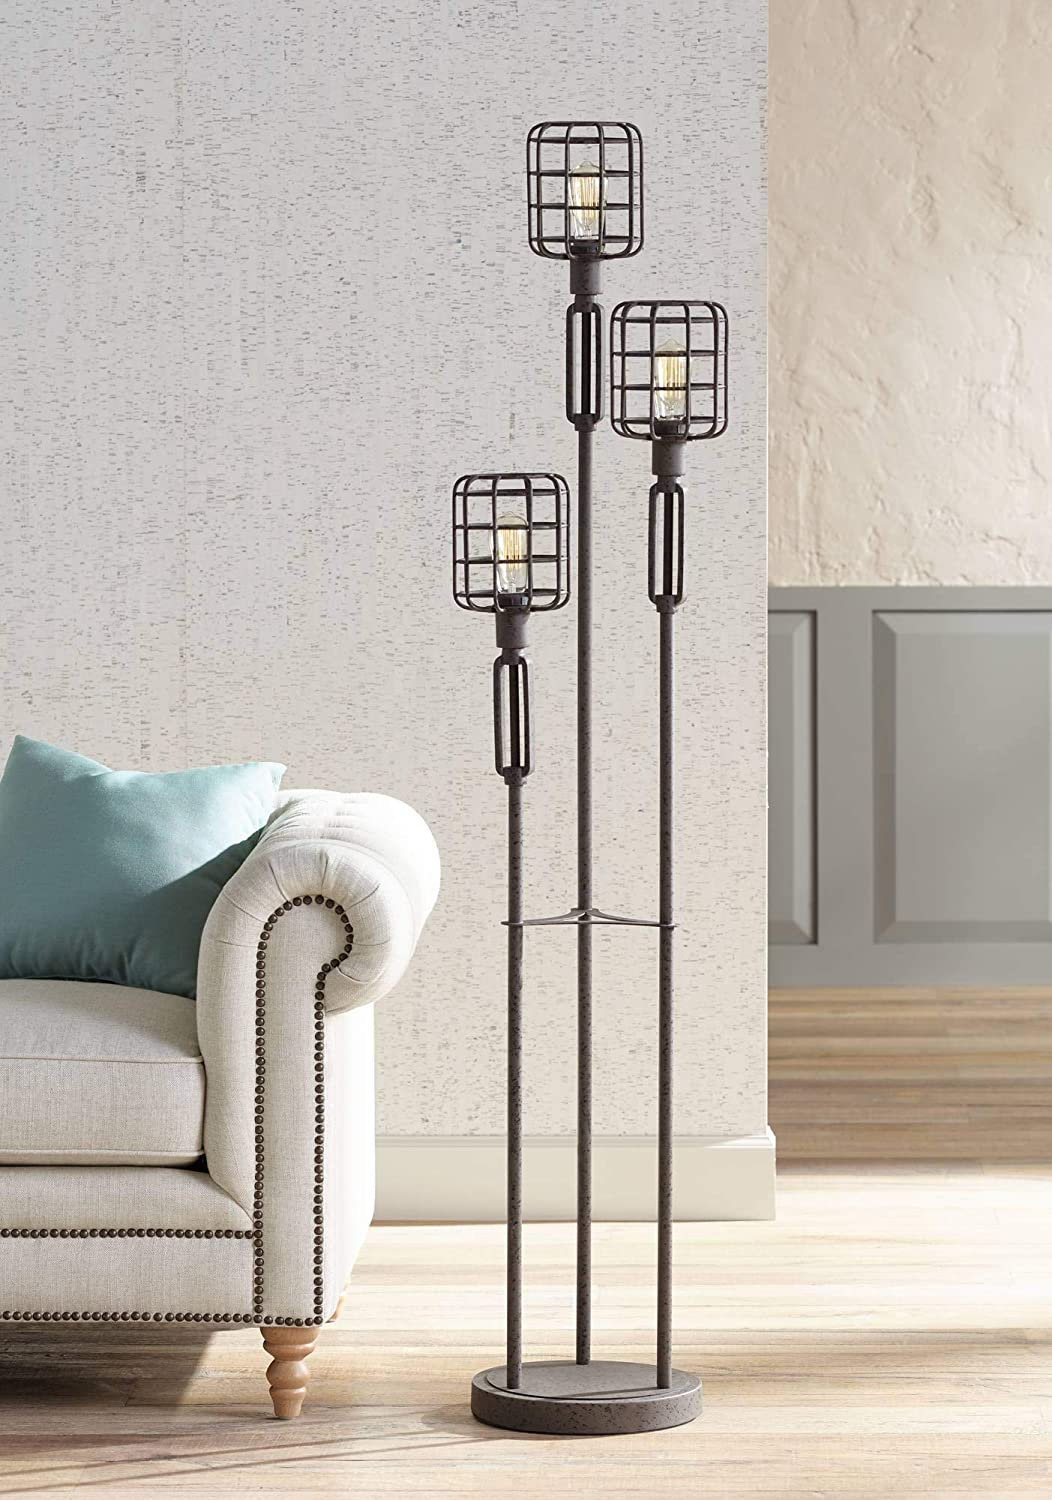 Modern Industrial Floor Lamp Rustic Metal Cage Dimmable 3-Light LED Edison Bulbs for Living Room Bedroom – Franklin Iron Works